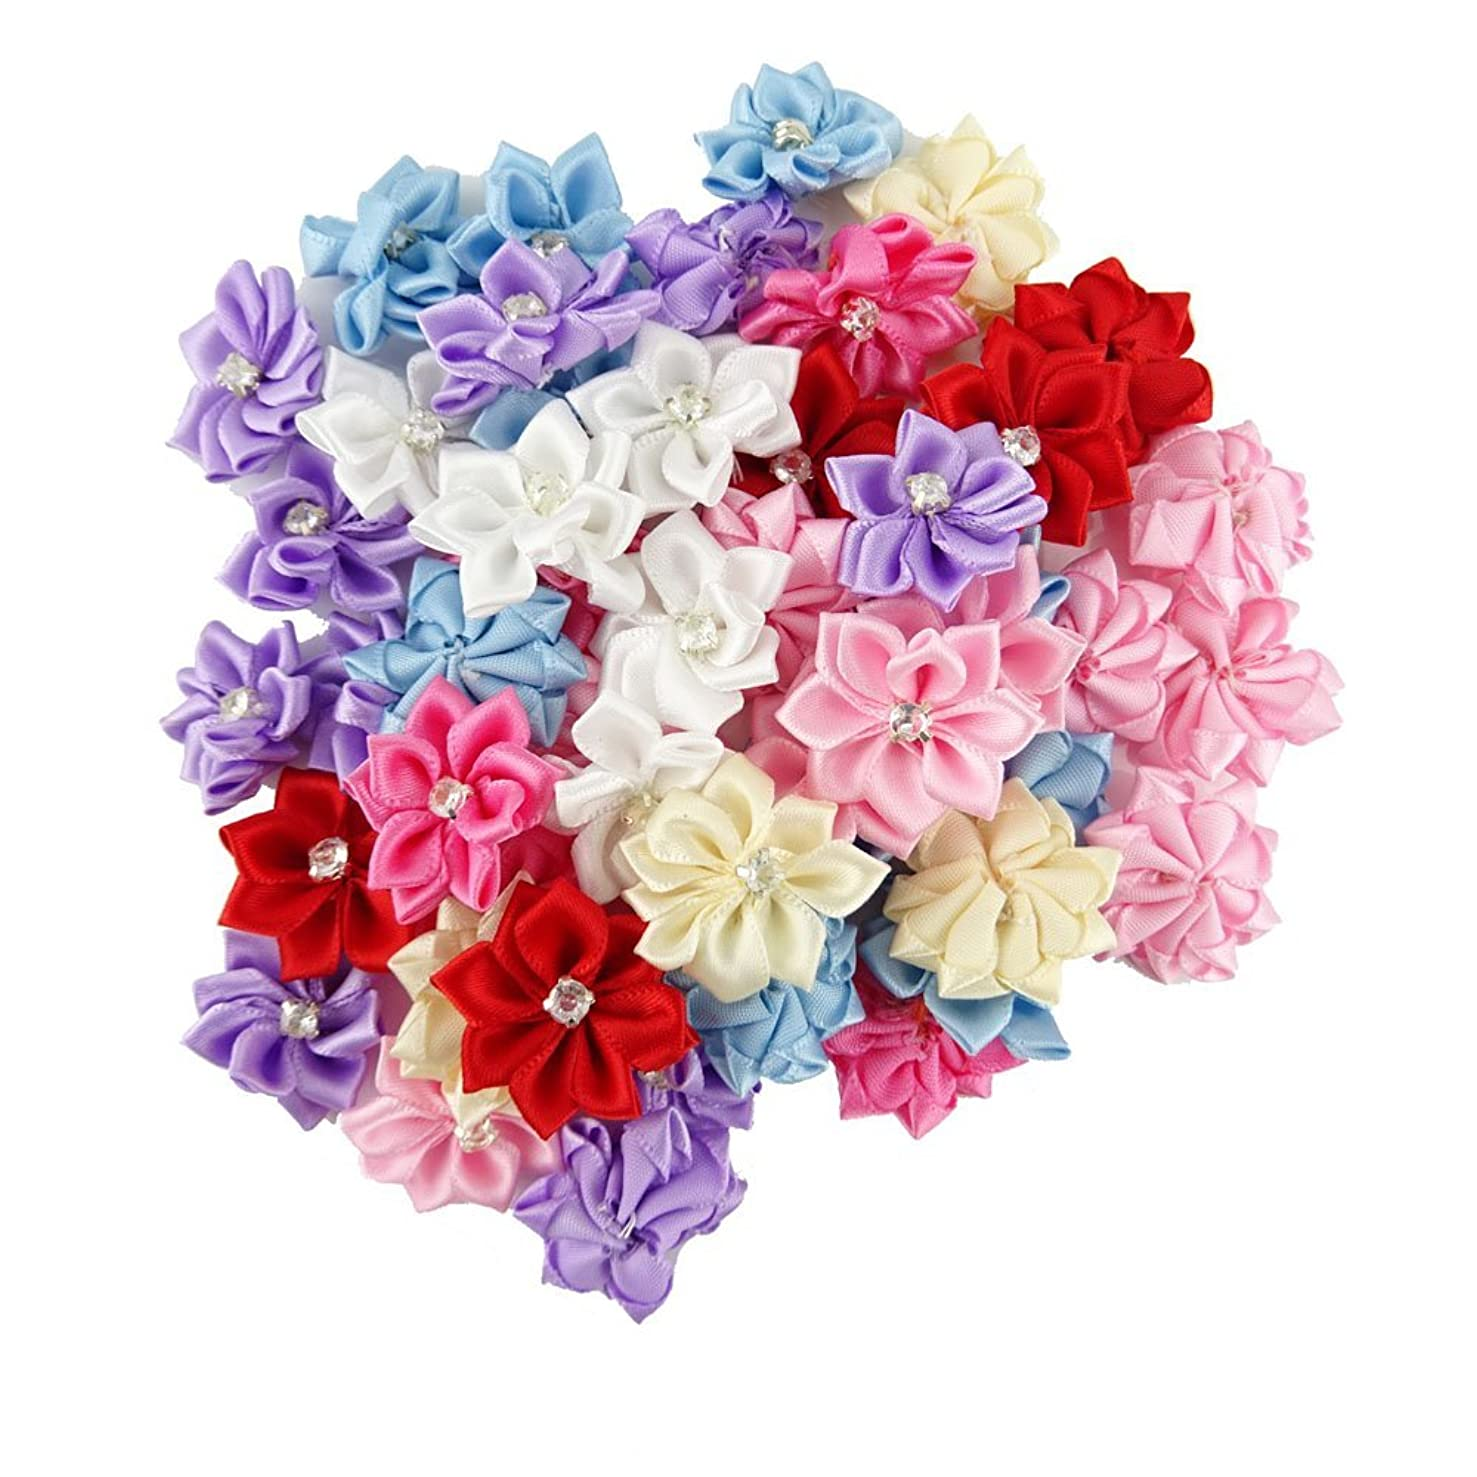 yueton Pack of 50 DIY Satin Ribbon Flowers with Rhinestone Craft Wedding Ornament Appliques (Assorted color-50pcs)